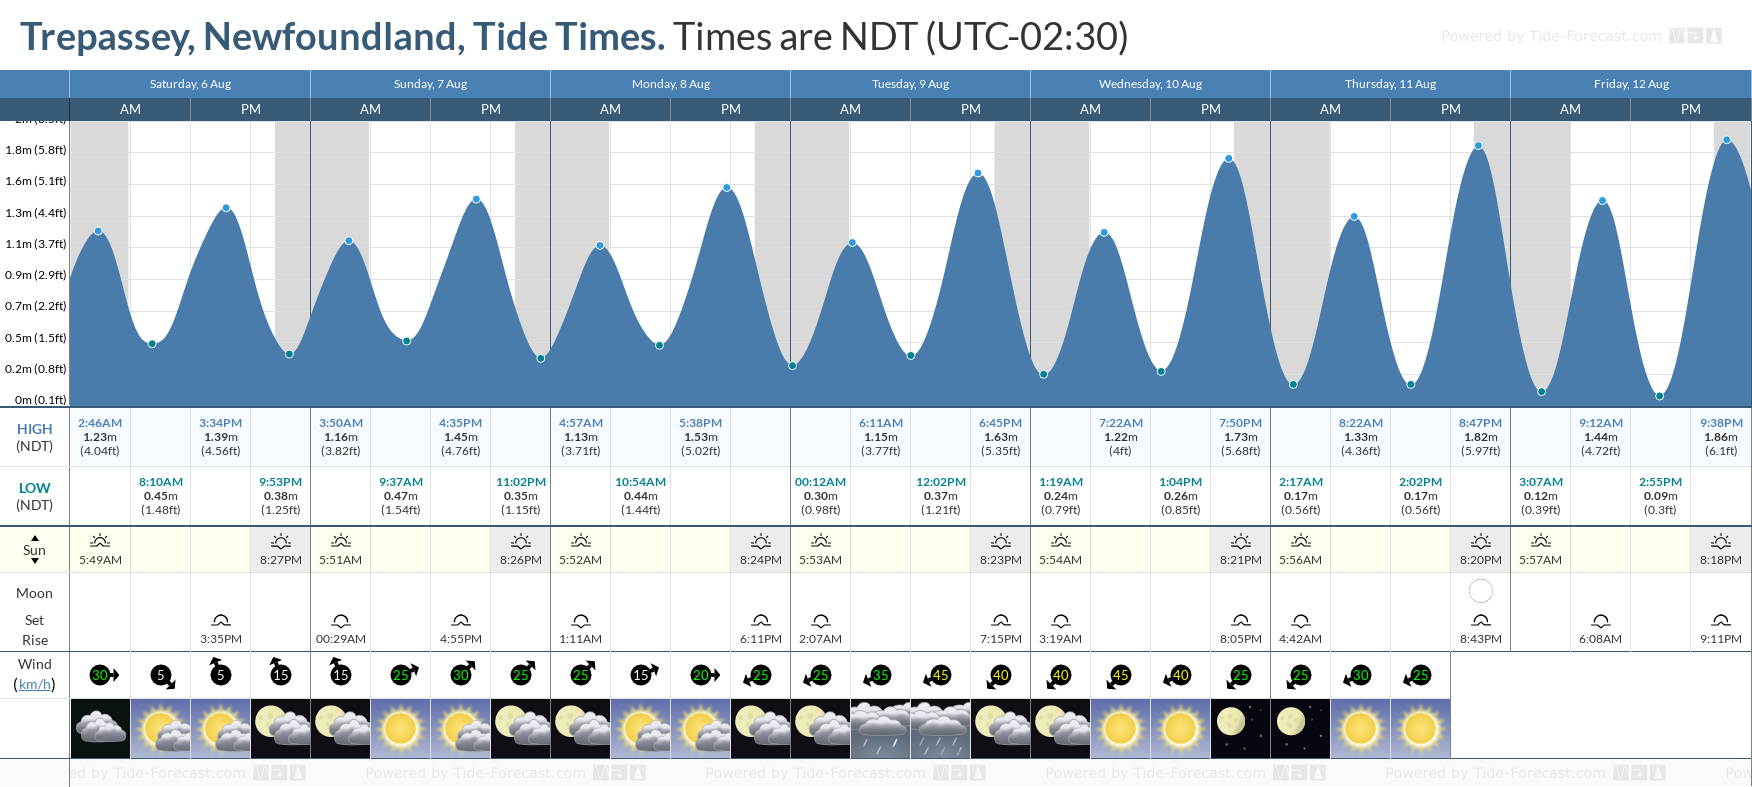 Trepassey, Newfoundland Tide Chart including high and low tide tide times for the next 7 days